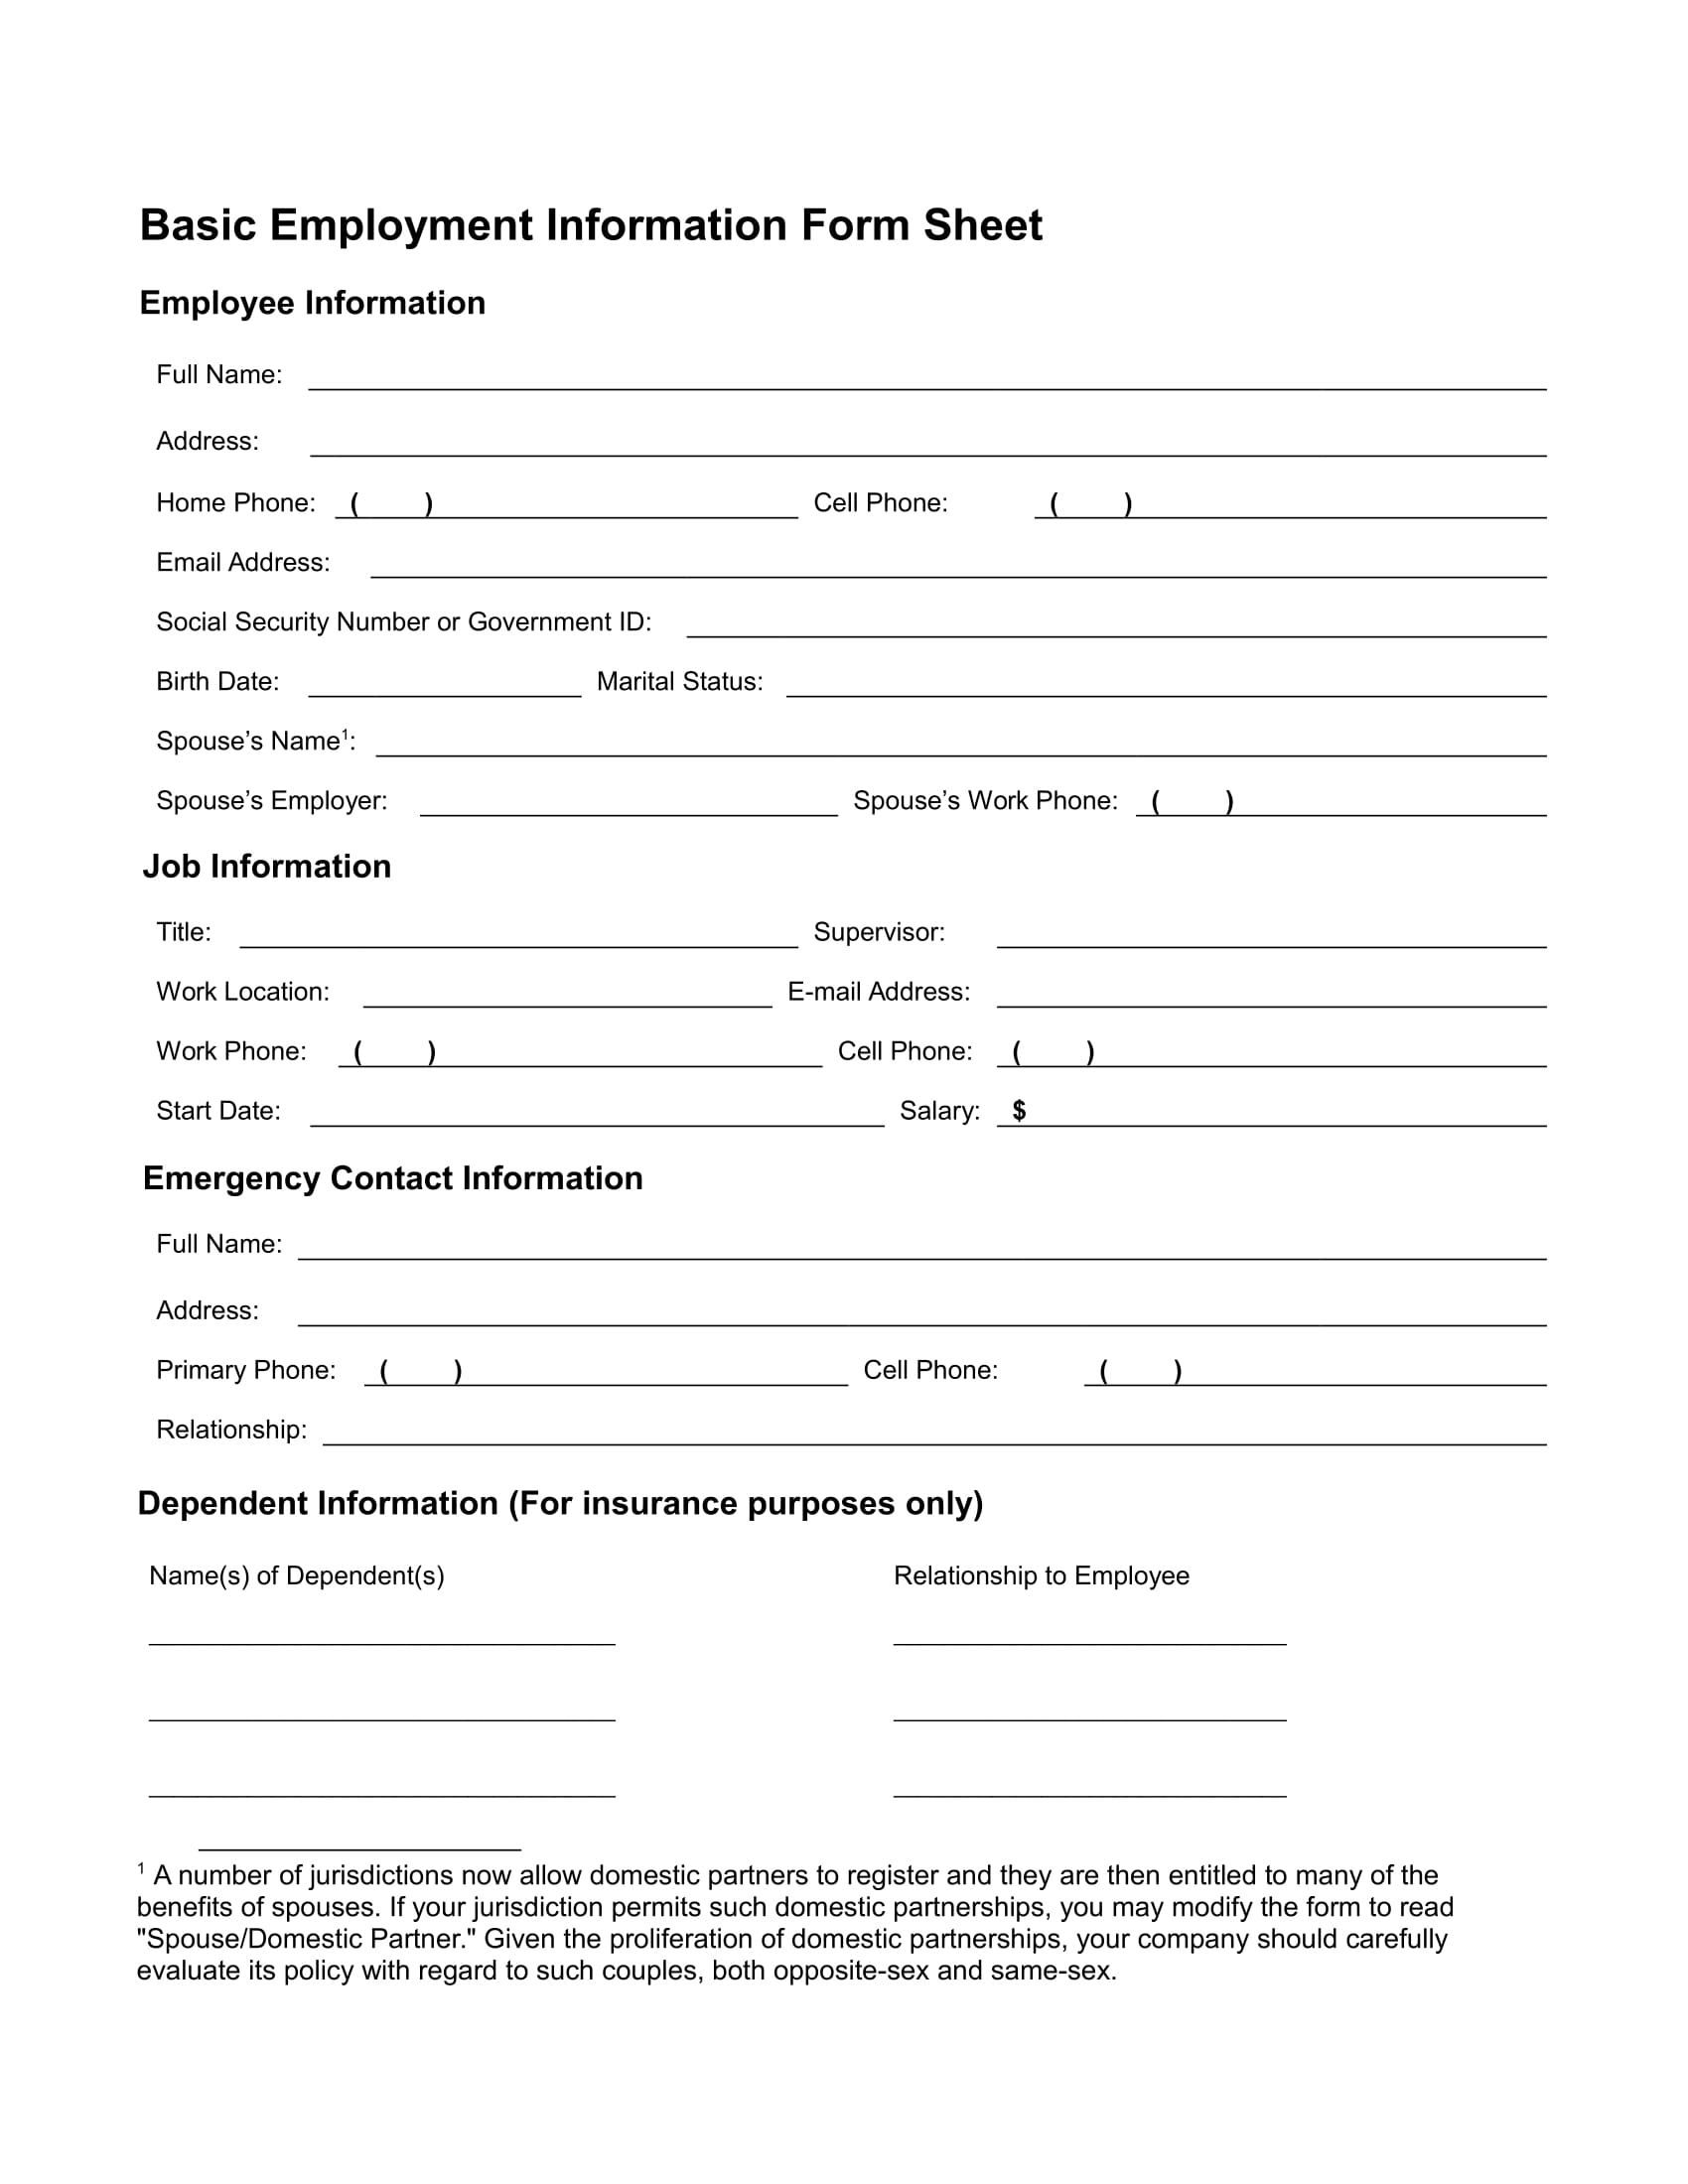 basic employment information form sheet 1